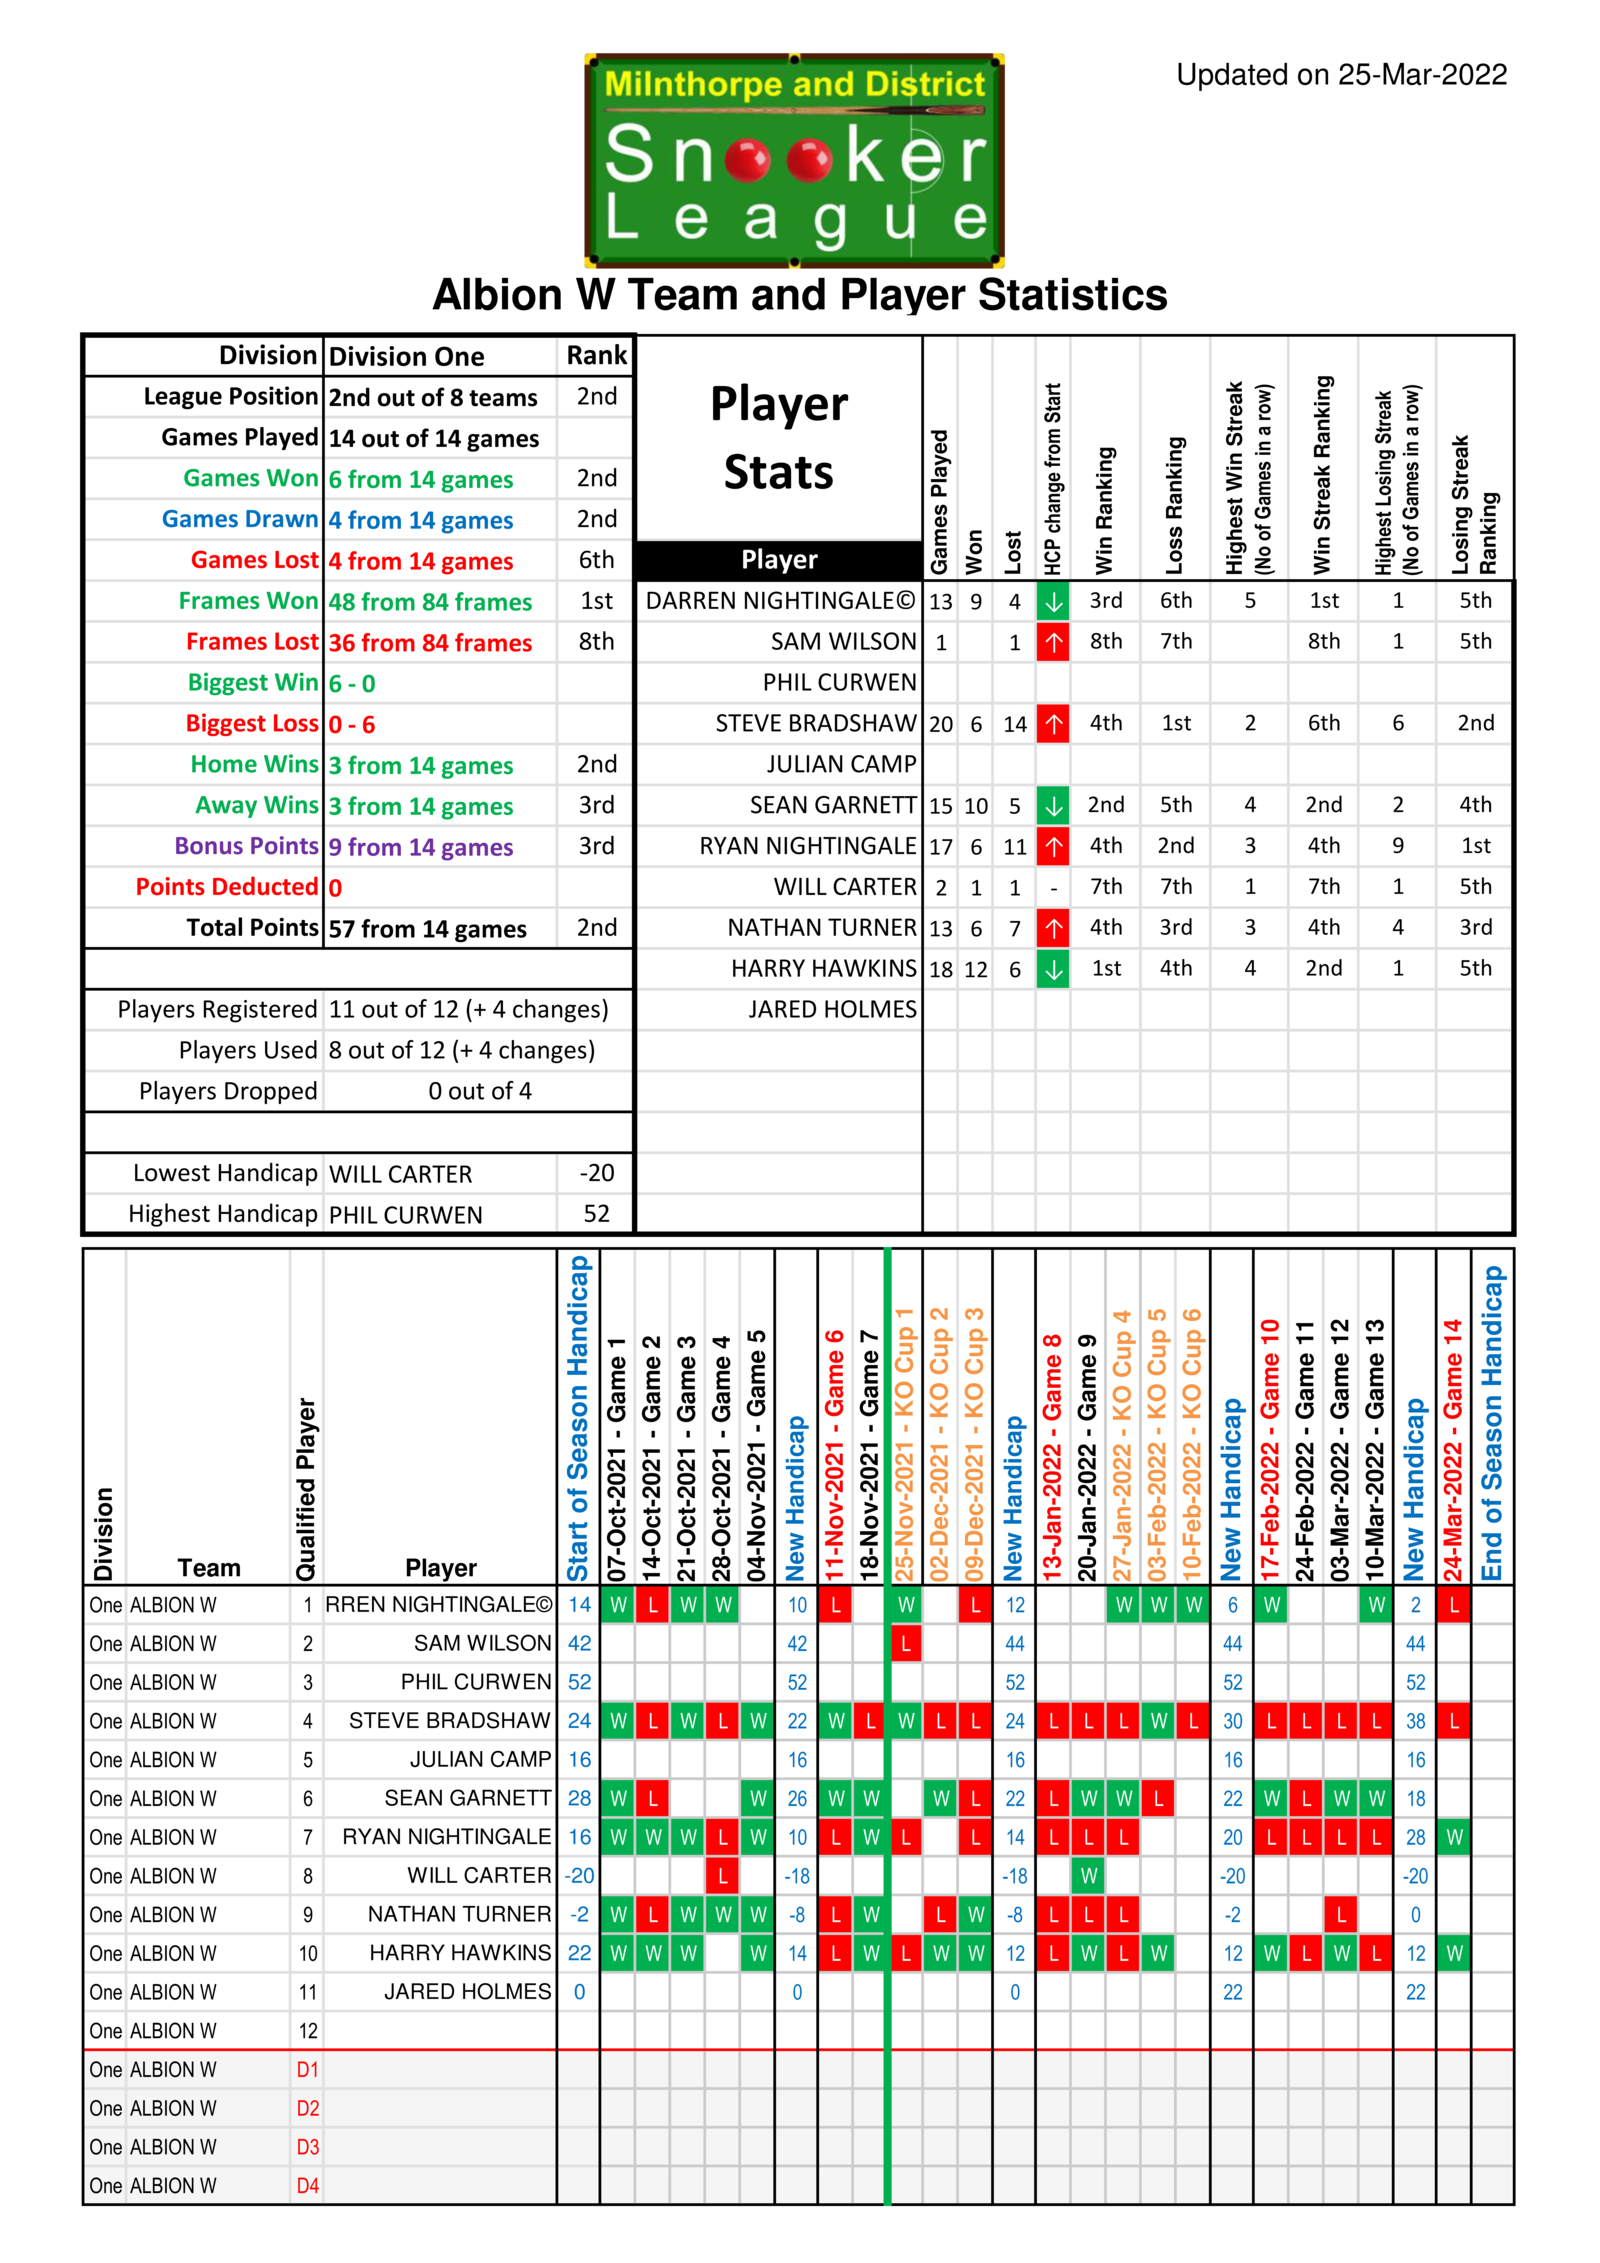 Team Stats for Albion W